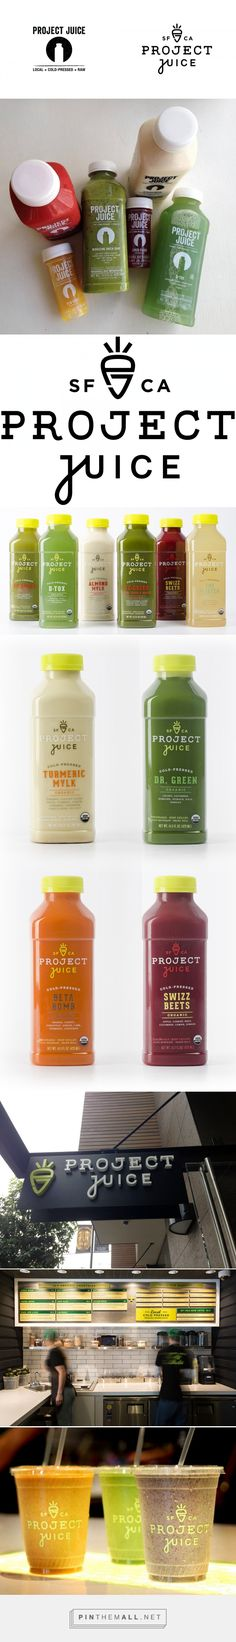 New Logo and Packaging for Project Juice by Chen Design Associates curated by Packaging Diva PD. Tasty looking shop and packaging. Juice Logo, Juice Branding, Juice Packaging, Beverage Packaging, Bottle Packaging, Brand Packaging, Medical Packaging, Logo Inspiration, Packaging Design Inspiration